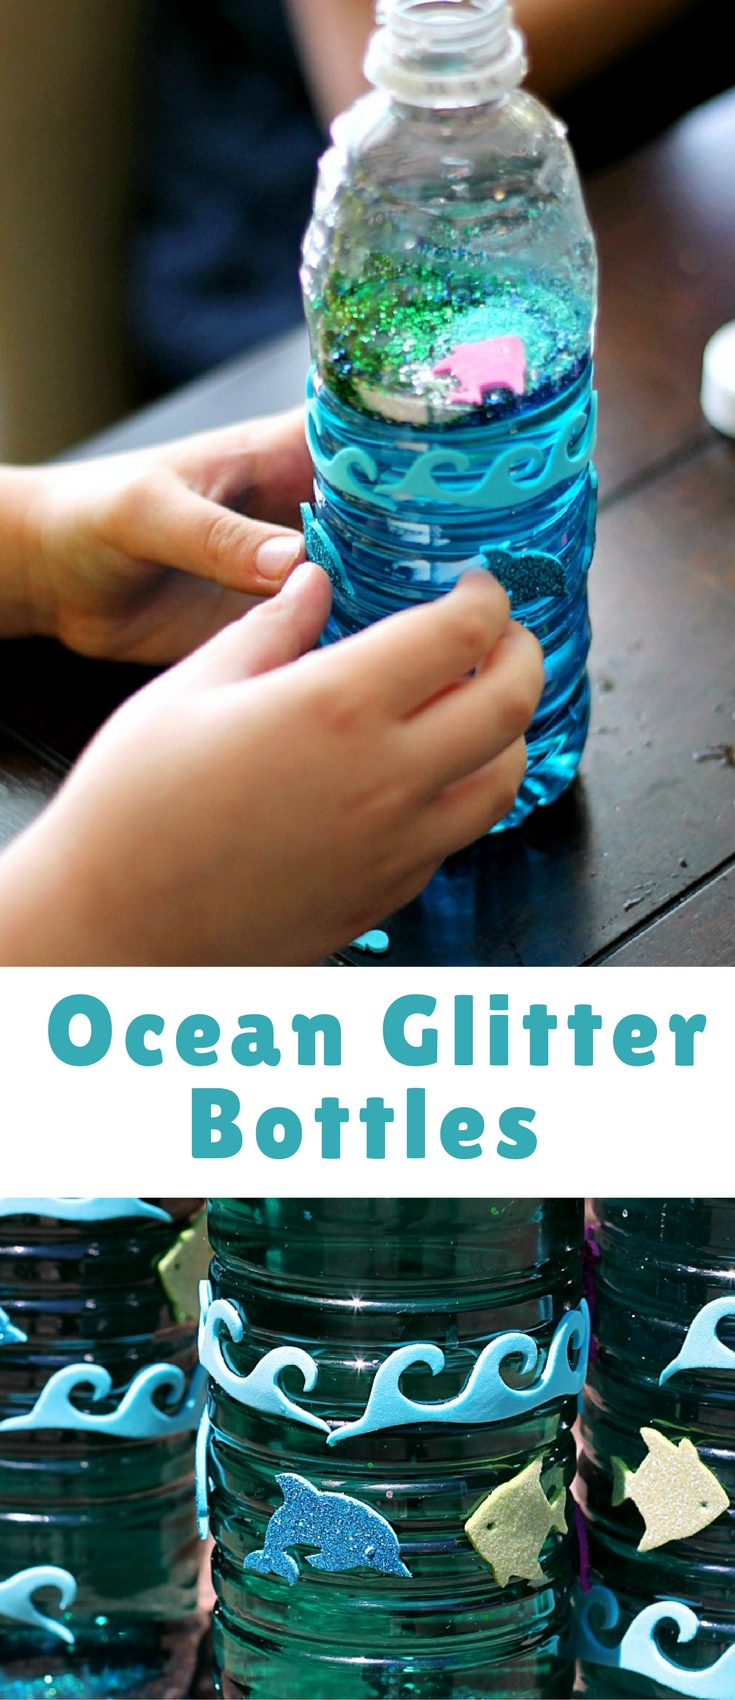 Kids love to make these, they are super easy and I just love them! They are so calming to look at with all the swirling glitter!